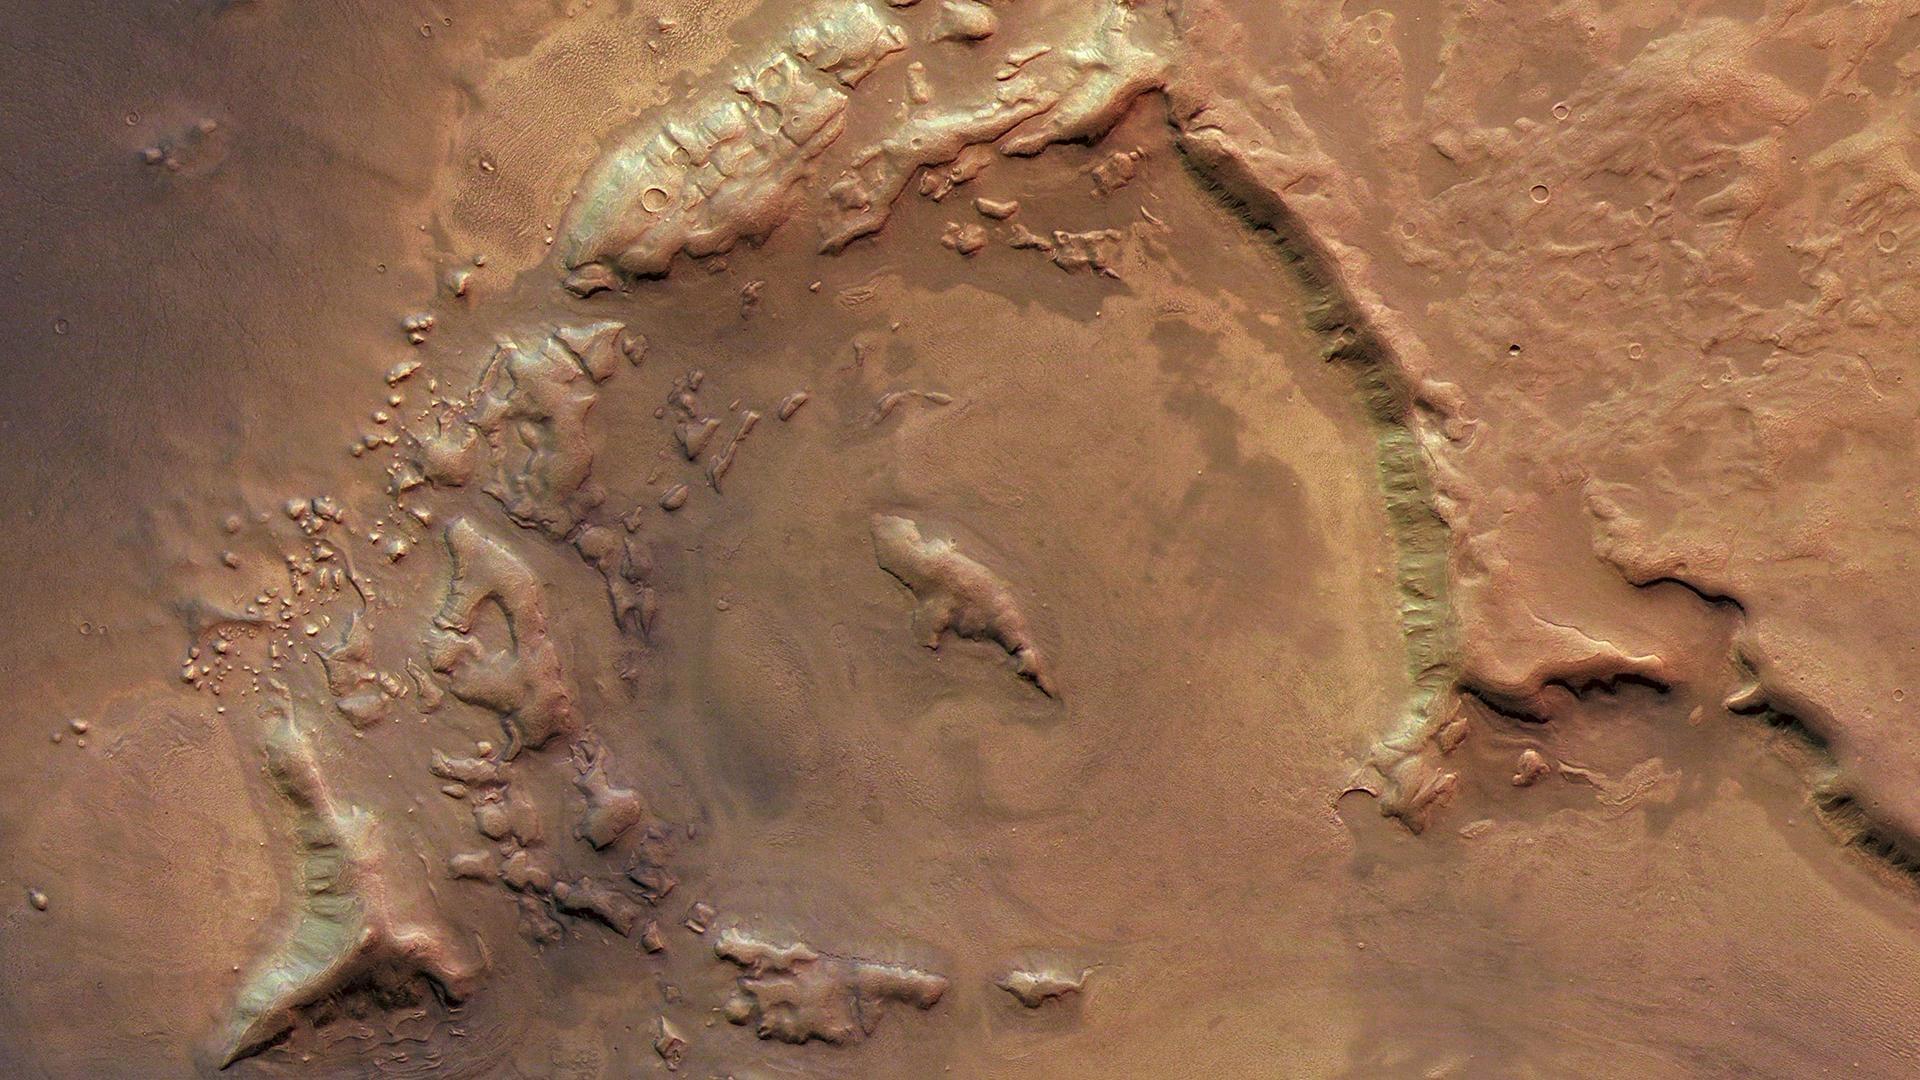 Image Detail 2: Impact crater filled with sediment